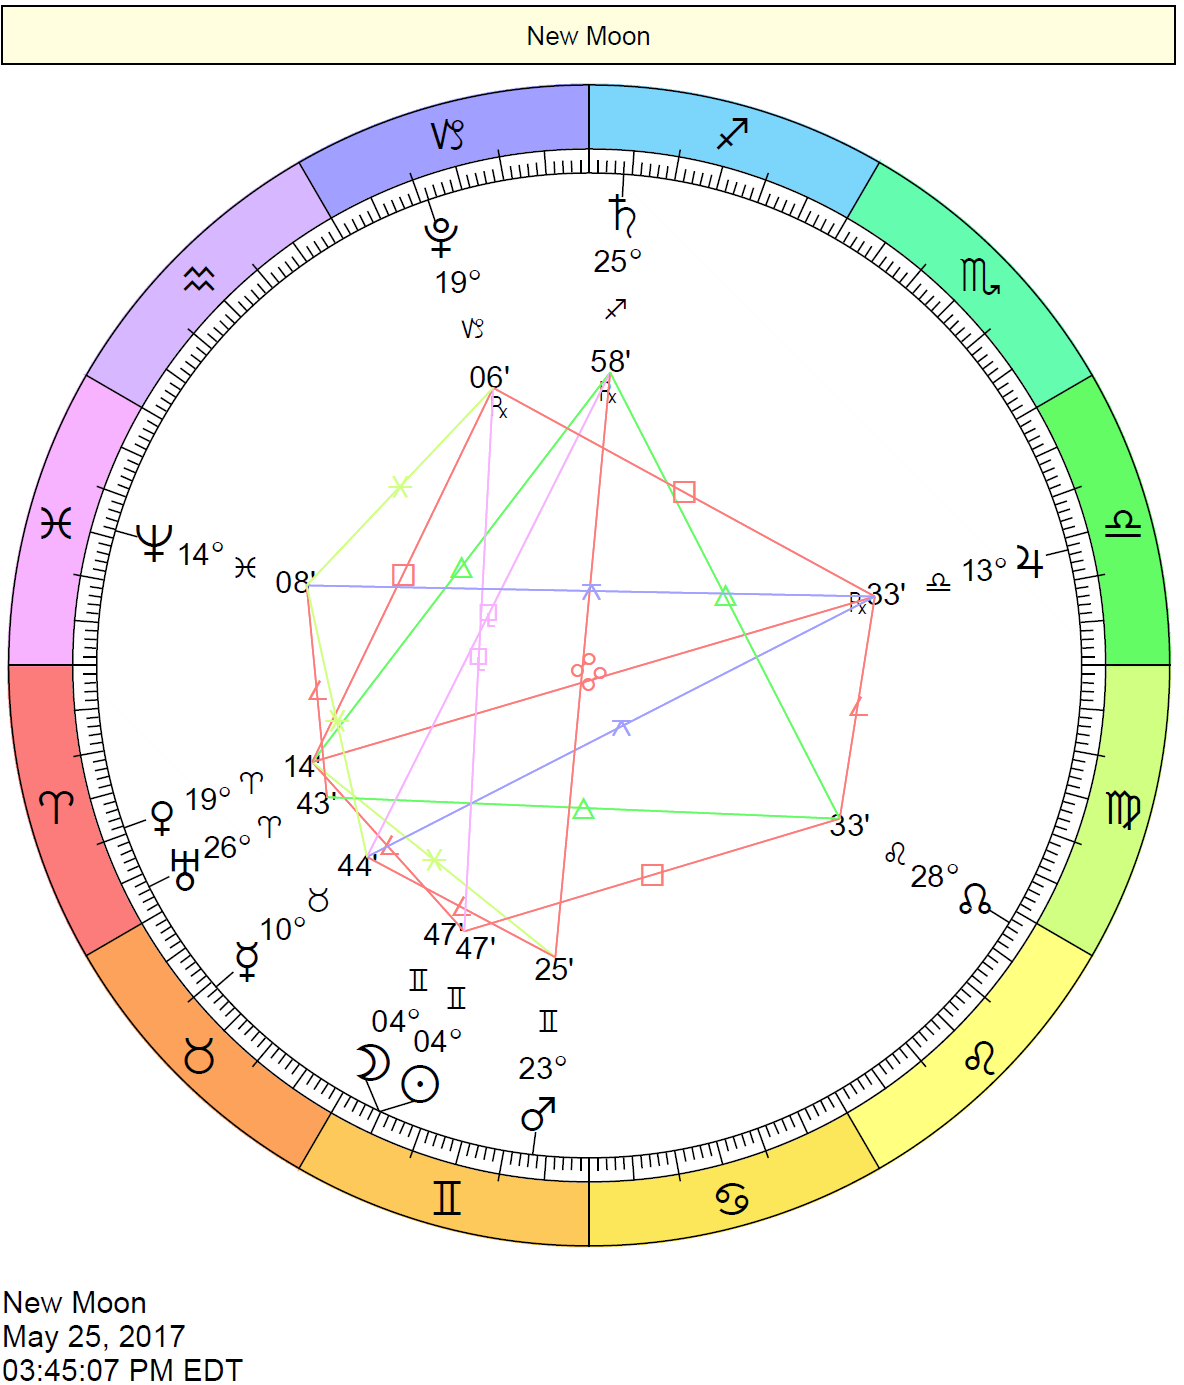 New moon in gemini chart on may 25 2017 in the stars your new moon in gemini chart on may 25 2017 nvjuhfo Image collections